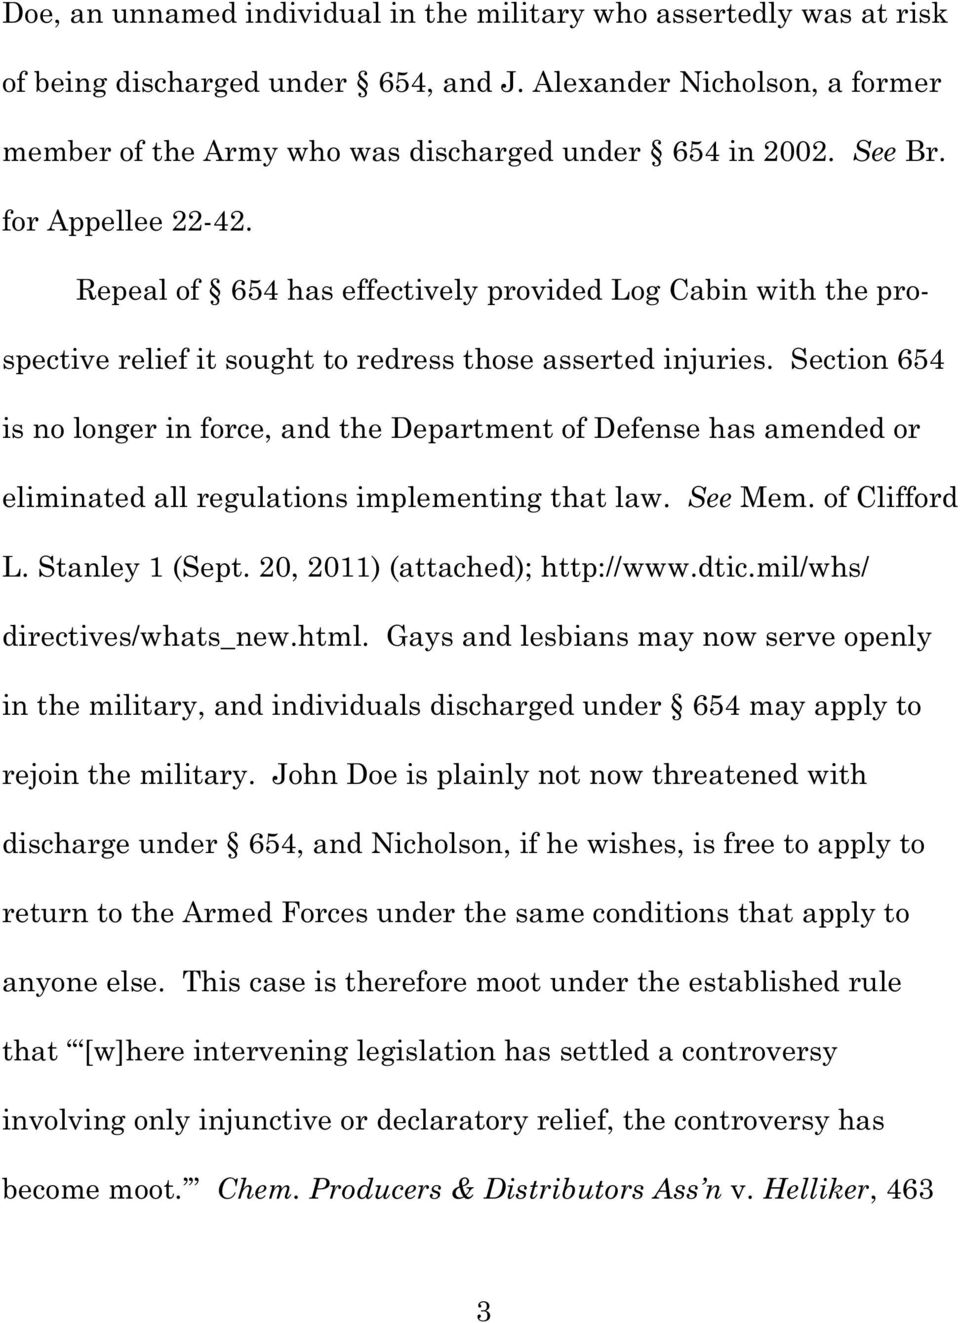 Section 654 is no longer in force, and the Department of Defense has amended or eliminated all regulations implementing that law. See Mem. of Clifford L. Stanley 1 (Sept.